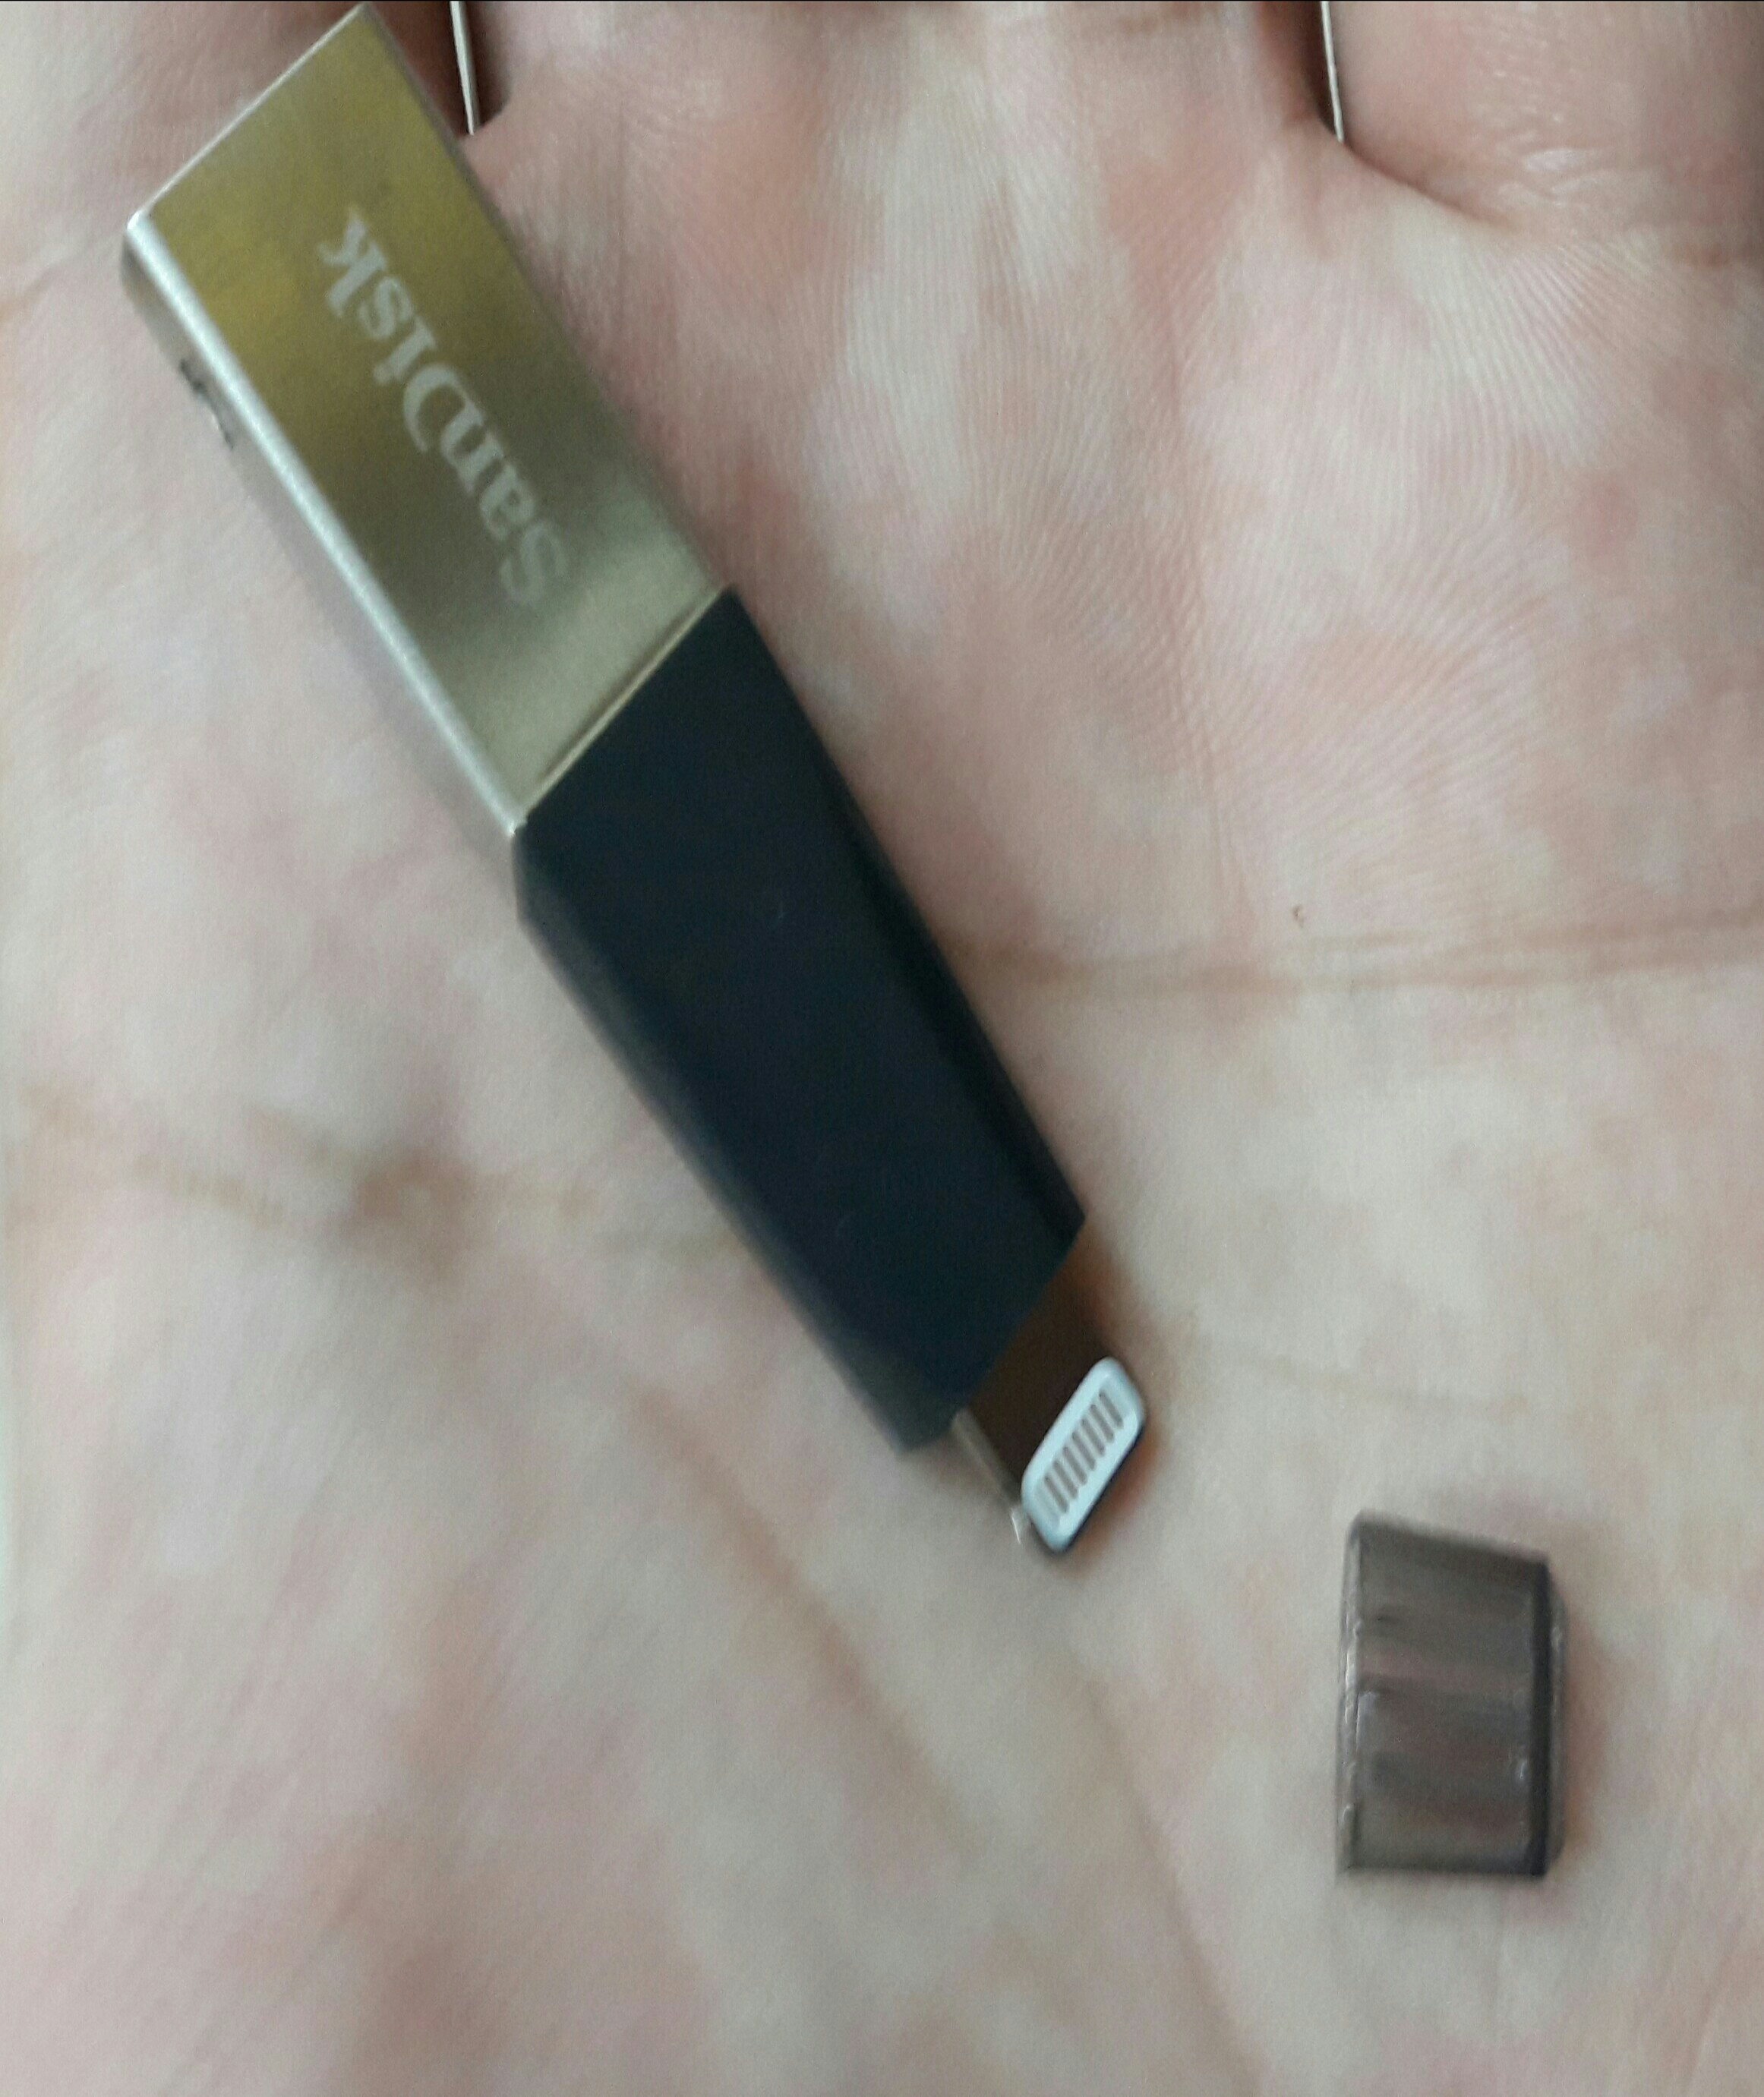 Sandisk Ixpand 16gb Iphone Flash drive